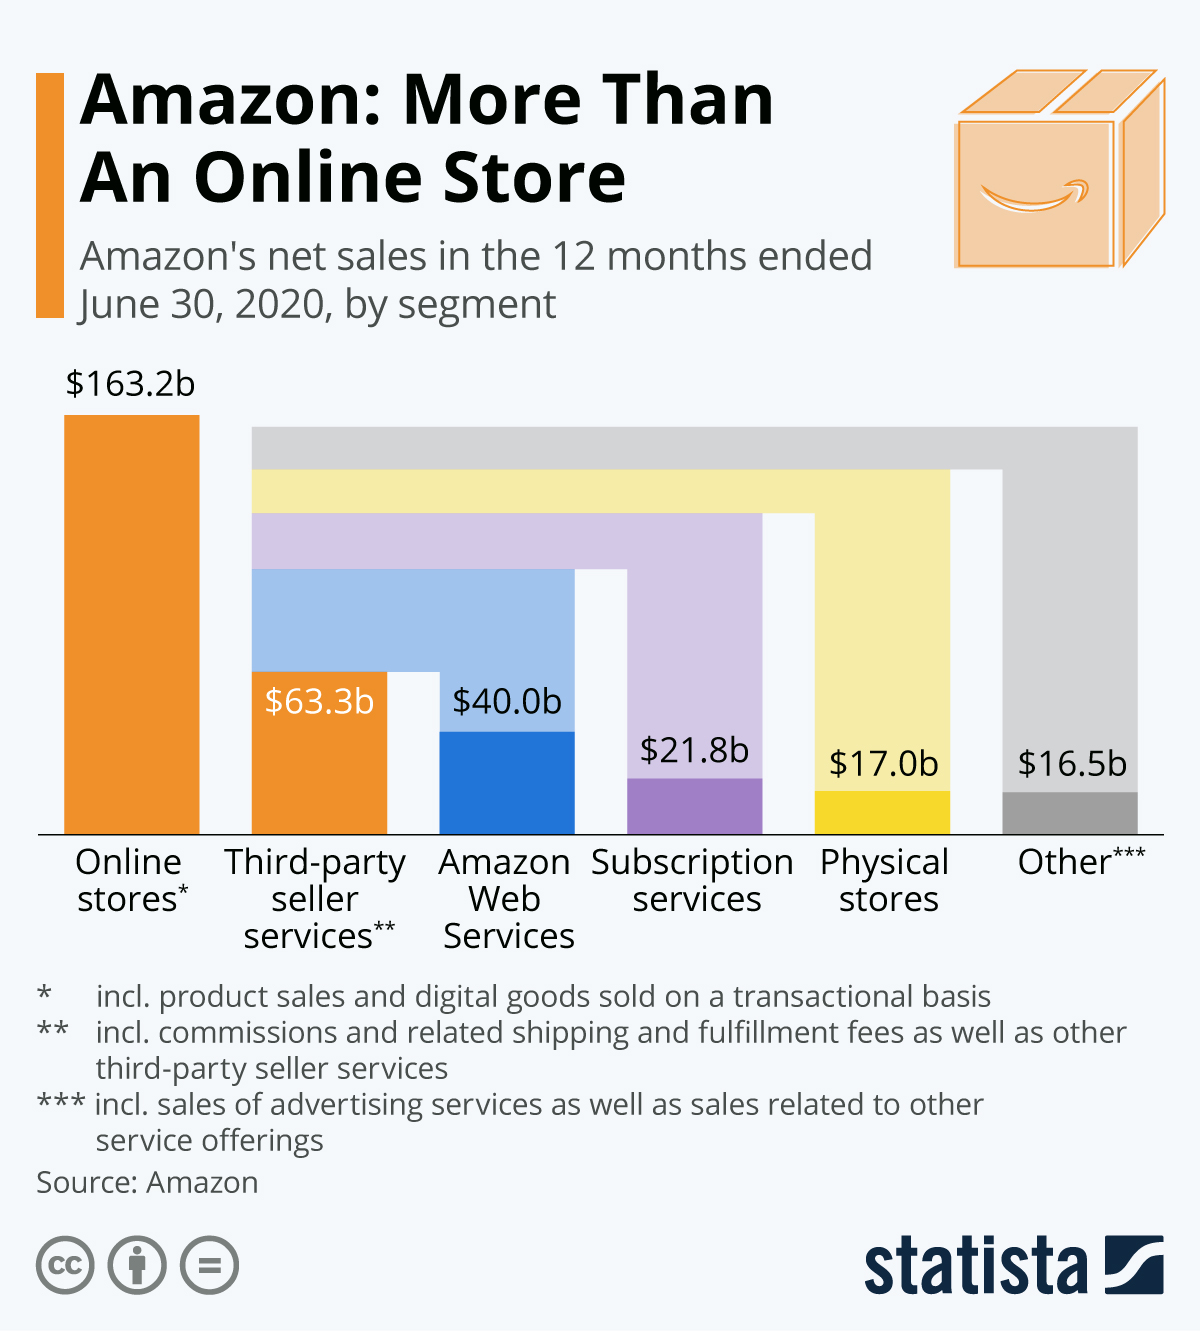 Amazon: More Than An Online Store